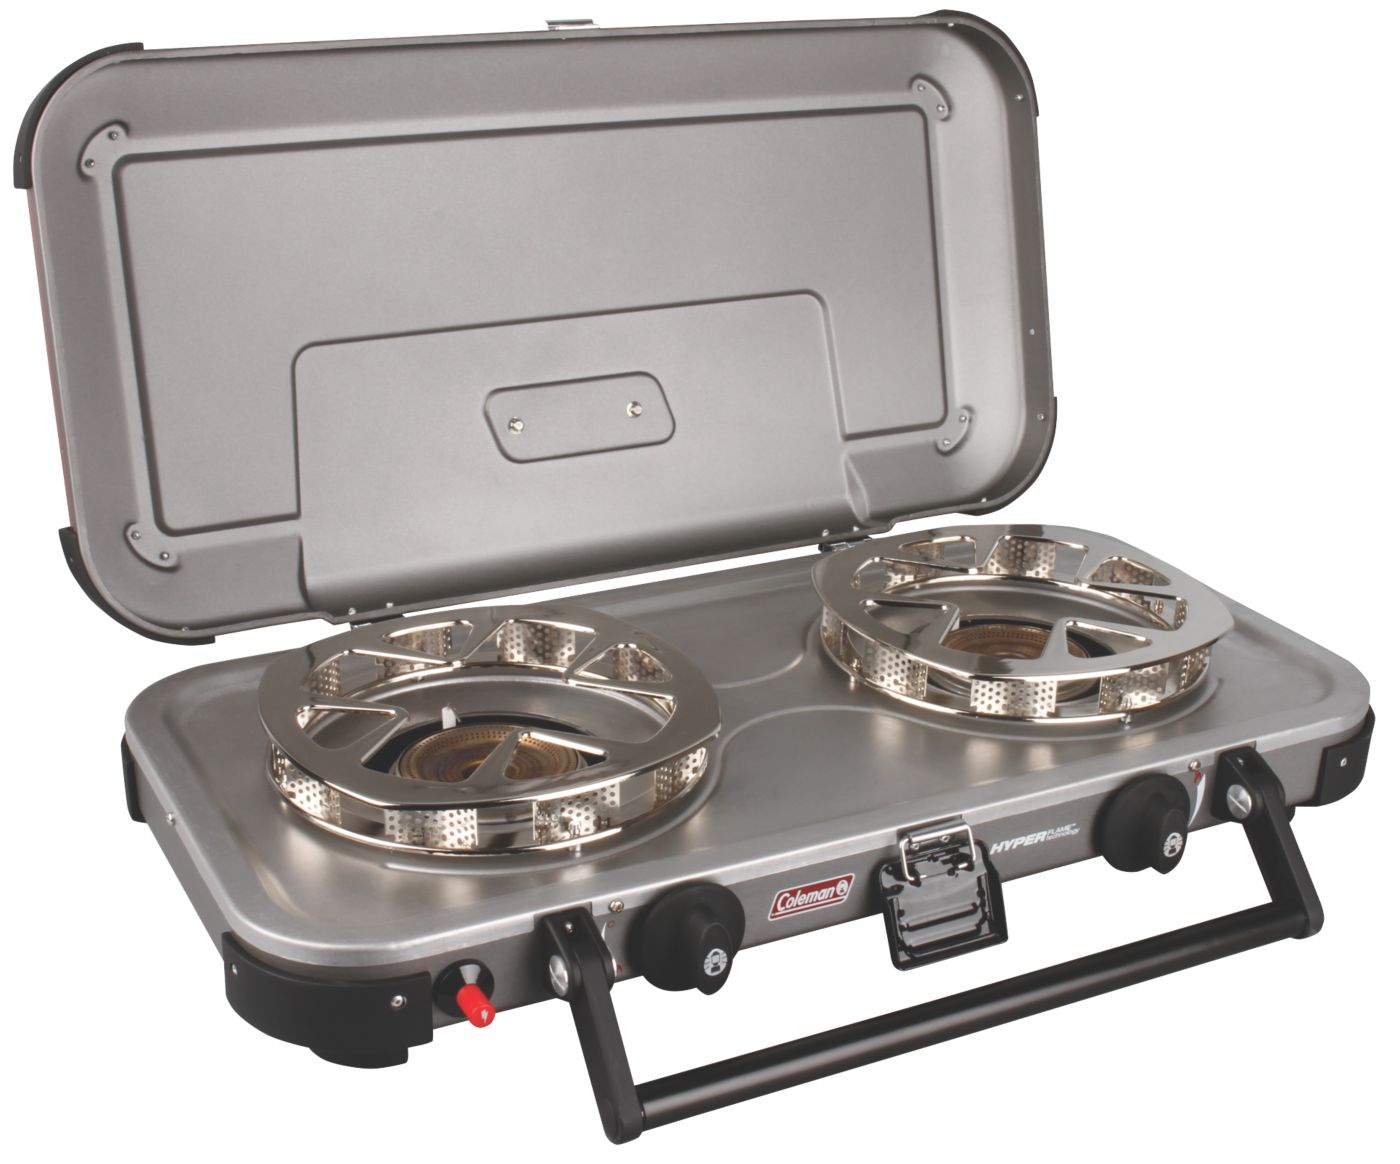 Signature Fyreknight Hyperflame 2 Burner Propane Camping Stove 5 Star Rating W Free Shipping And Handling